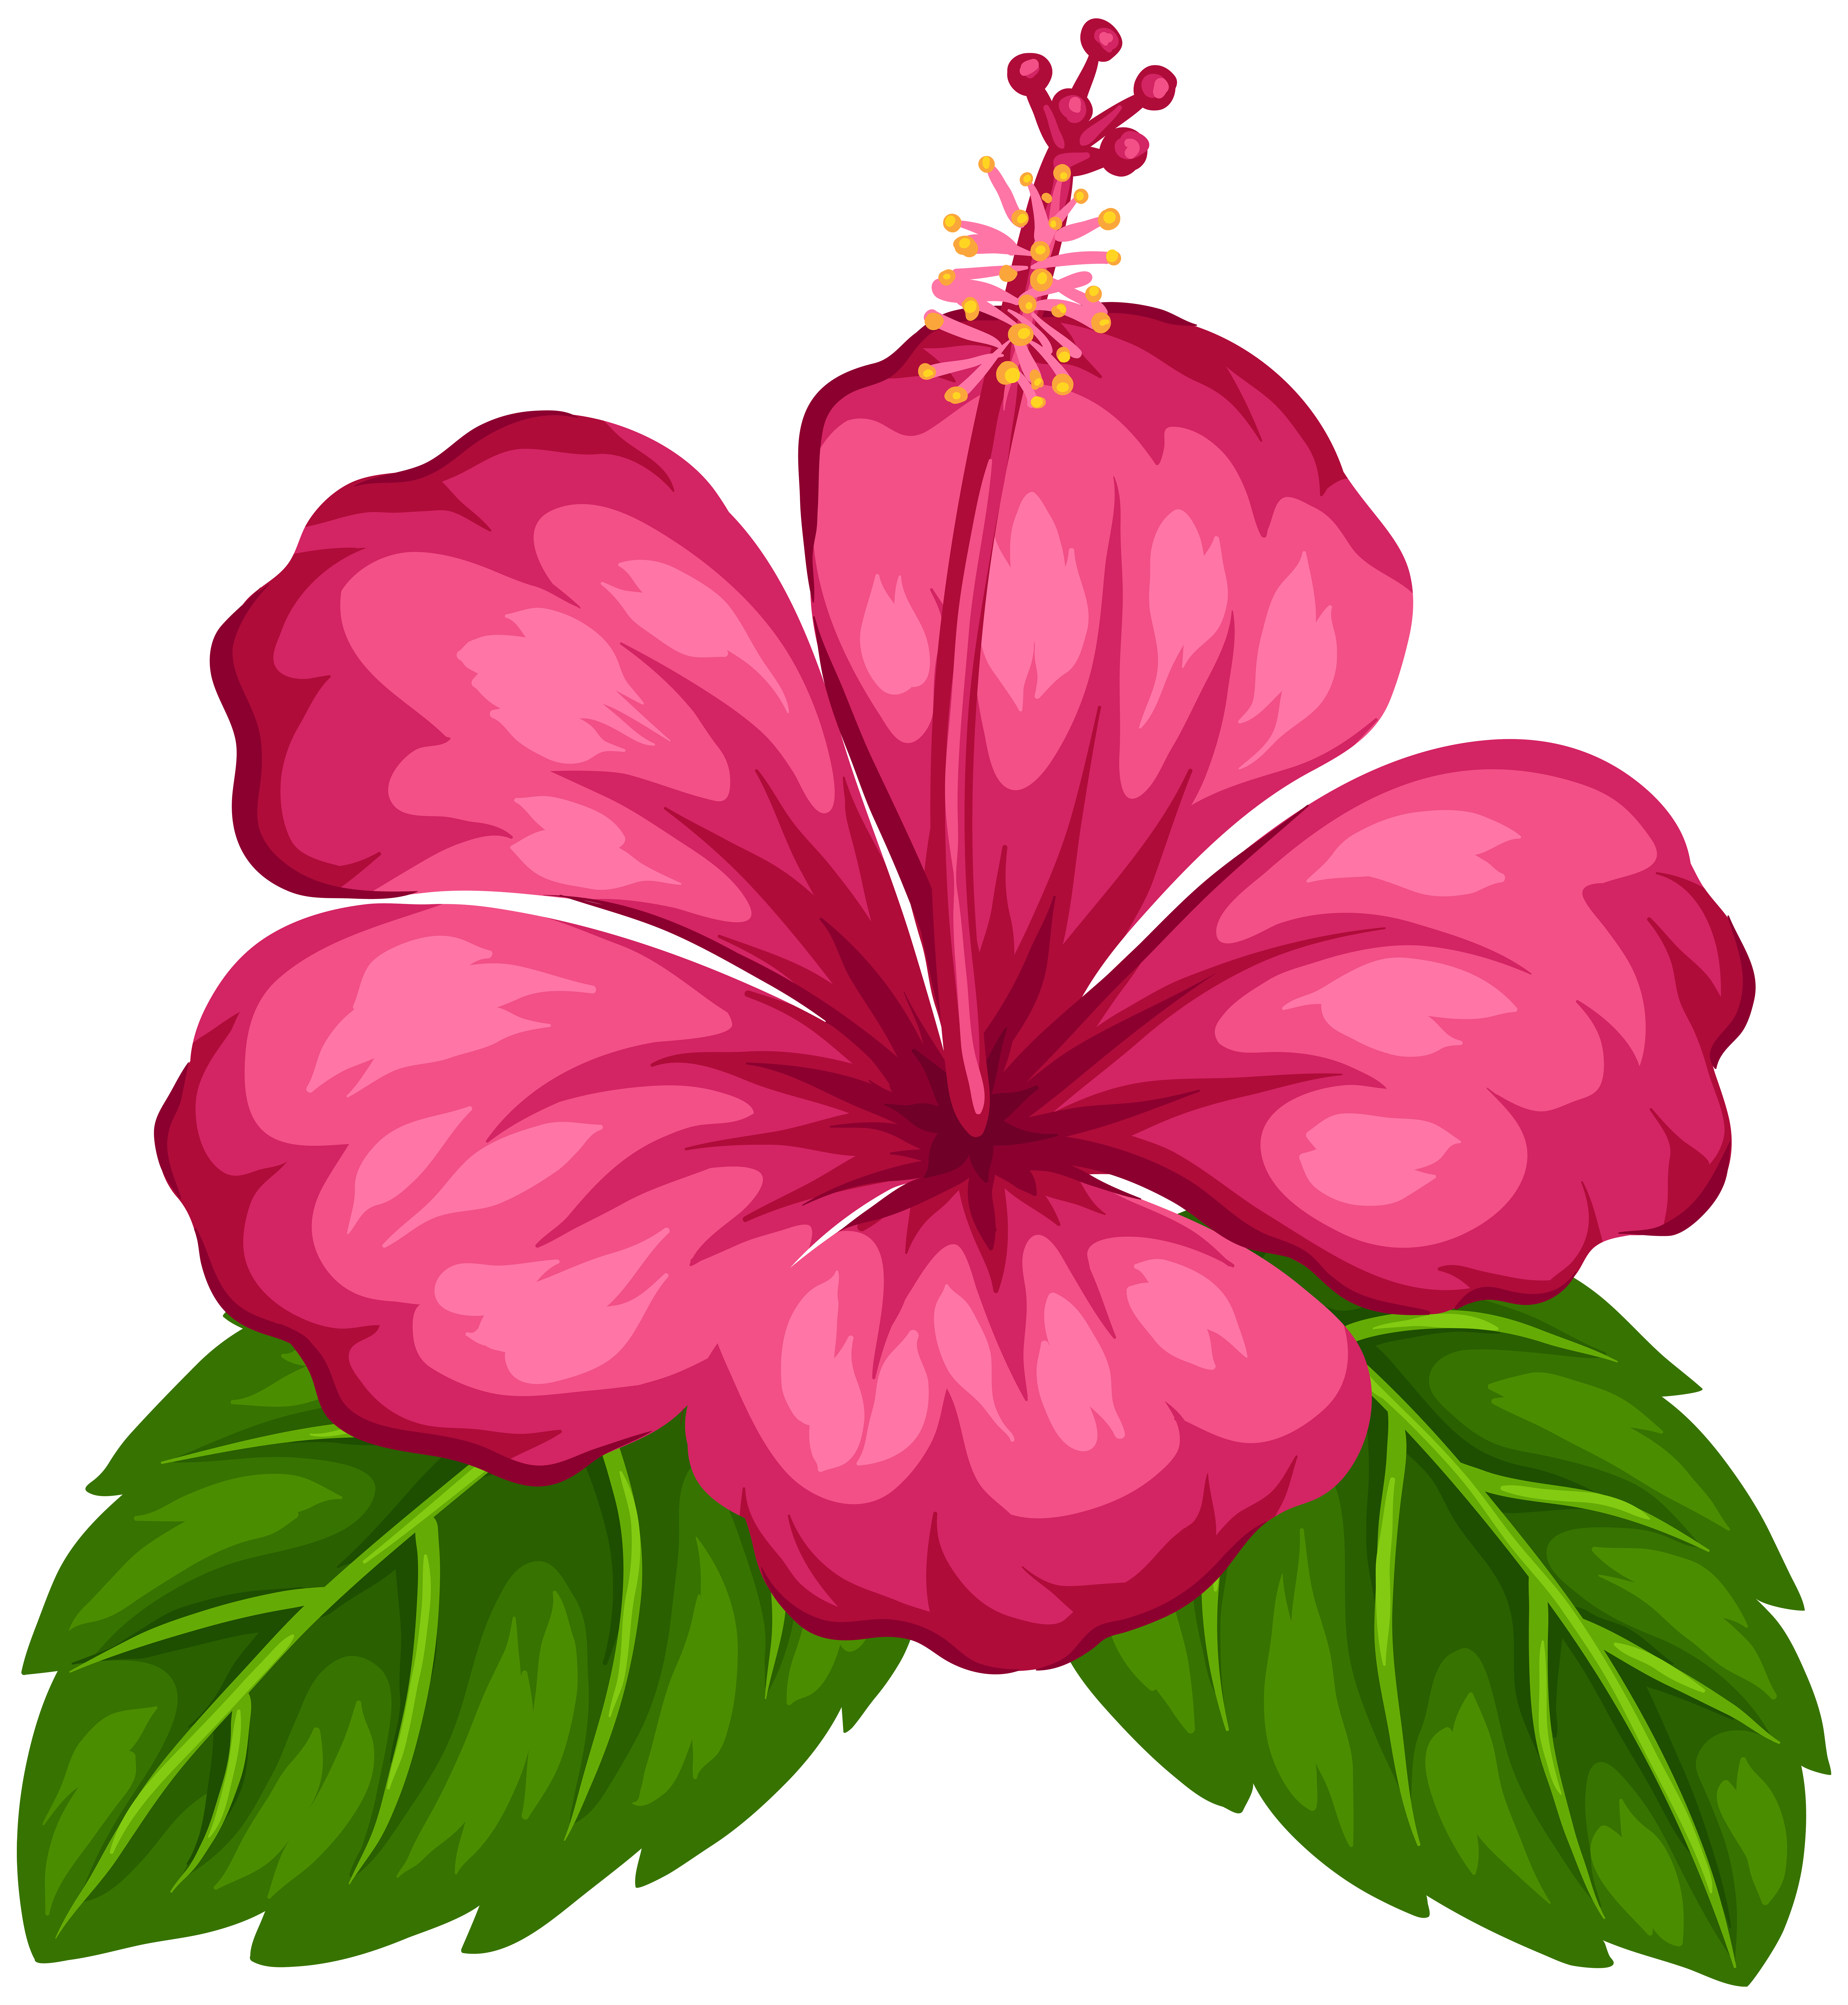 Red Flower clipart catoon #11